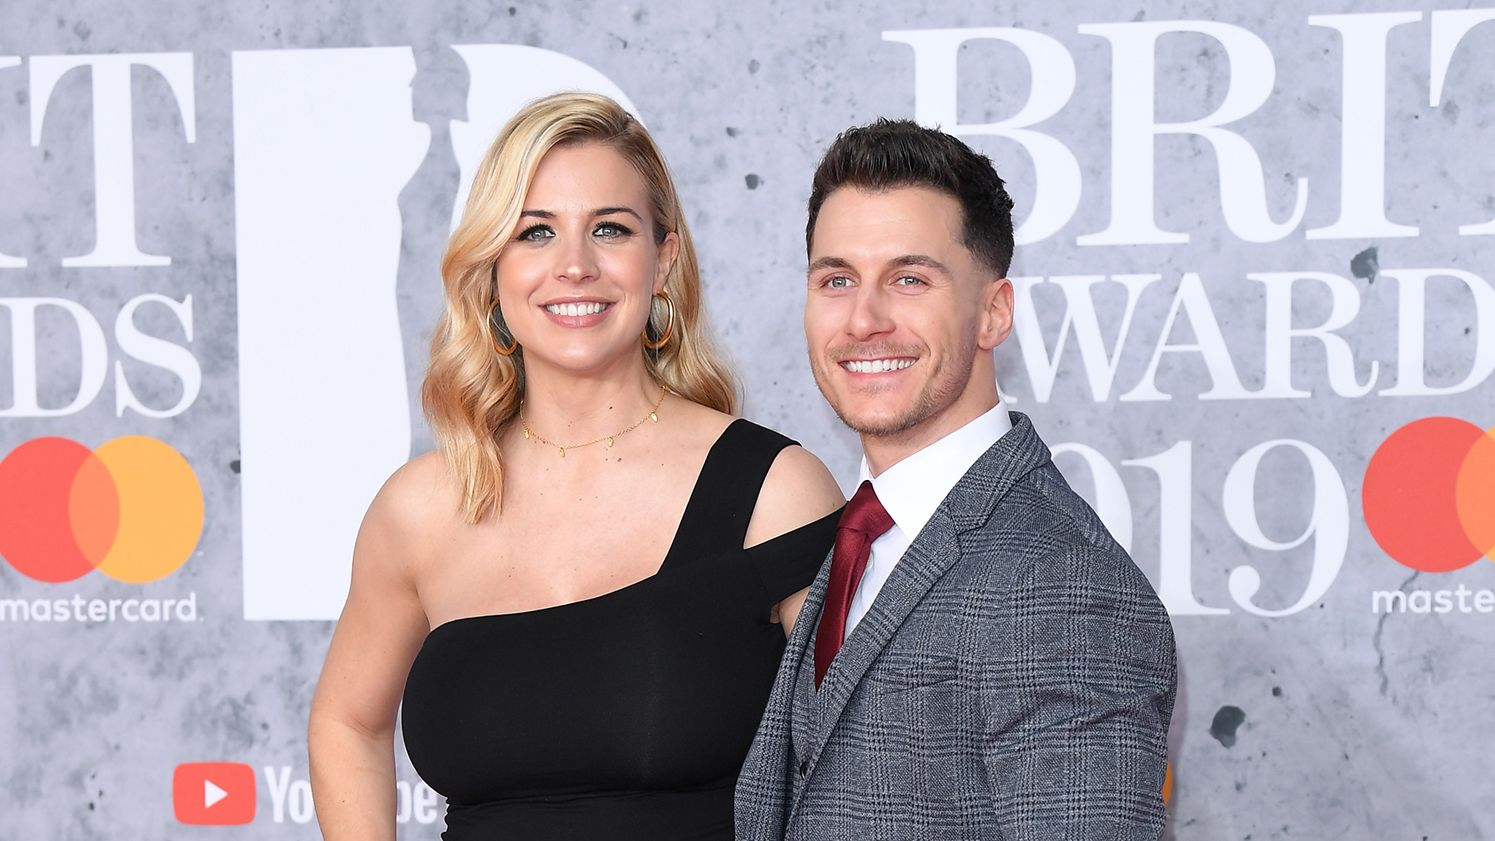 Gemma Atkinson and Gorka Marquez are ENGAGED!